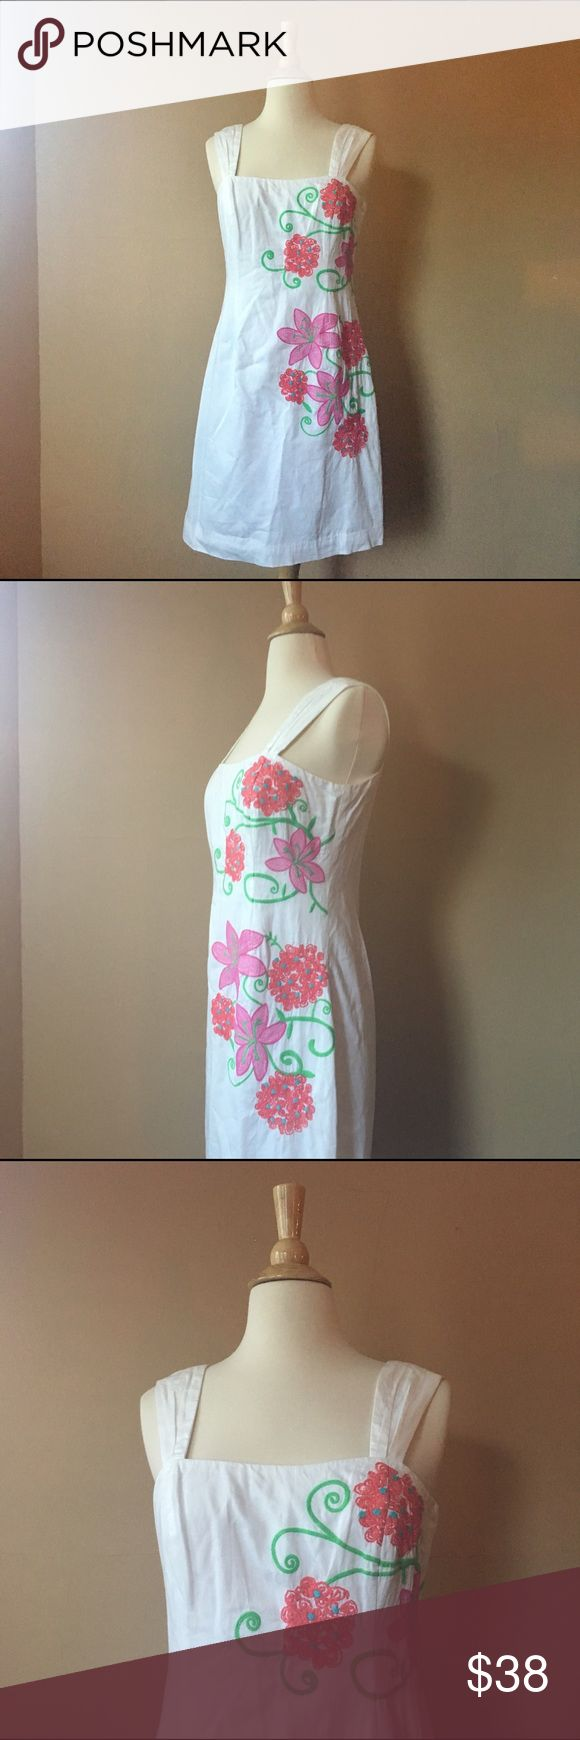 Lilly Pulitzer White dress with floral embroidery Lilly Pulitzer White dress with floral embroidery, Straight line, zipper on the back, fully lined 100% cotton, Size 4 Bust: 16in, Waist: 15in Length: 36inches from shoulder down Lilly Pulitzer Dresses